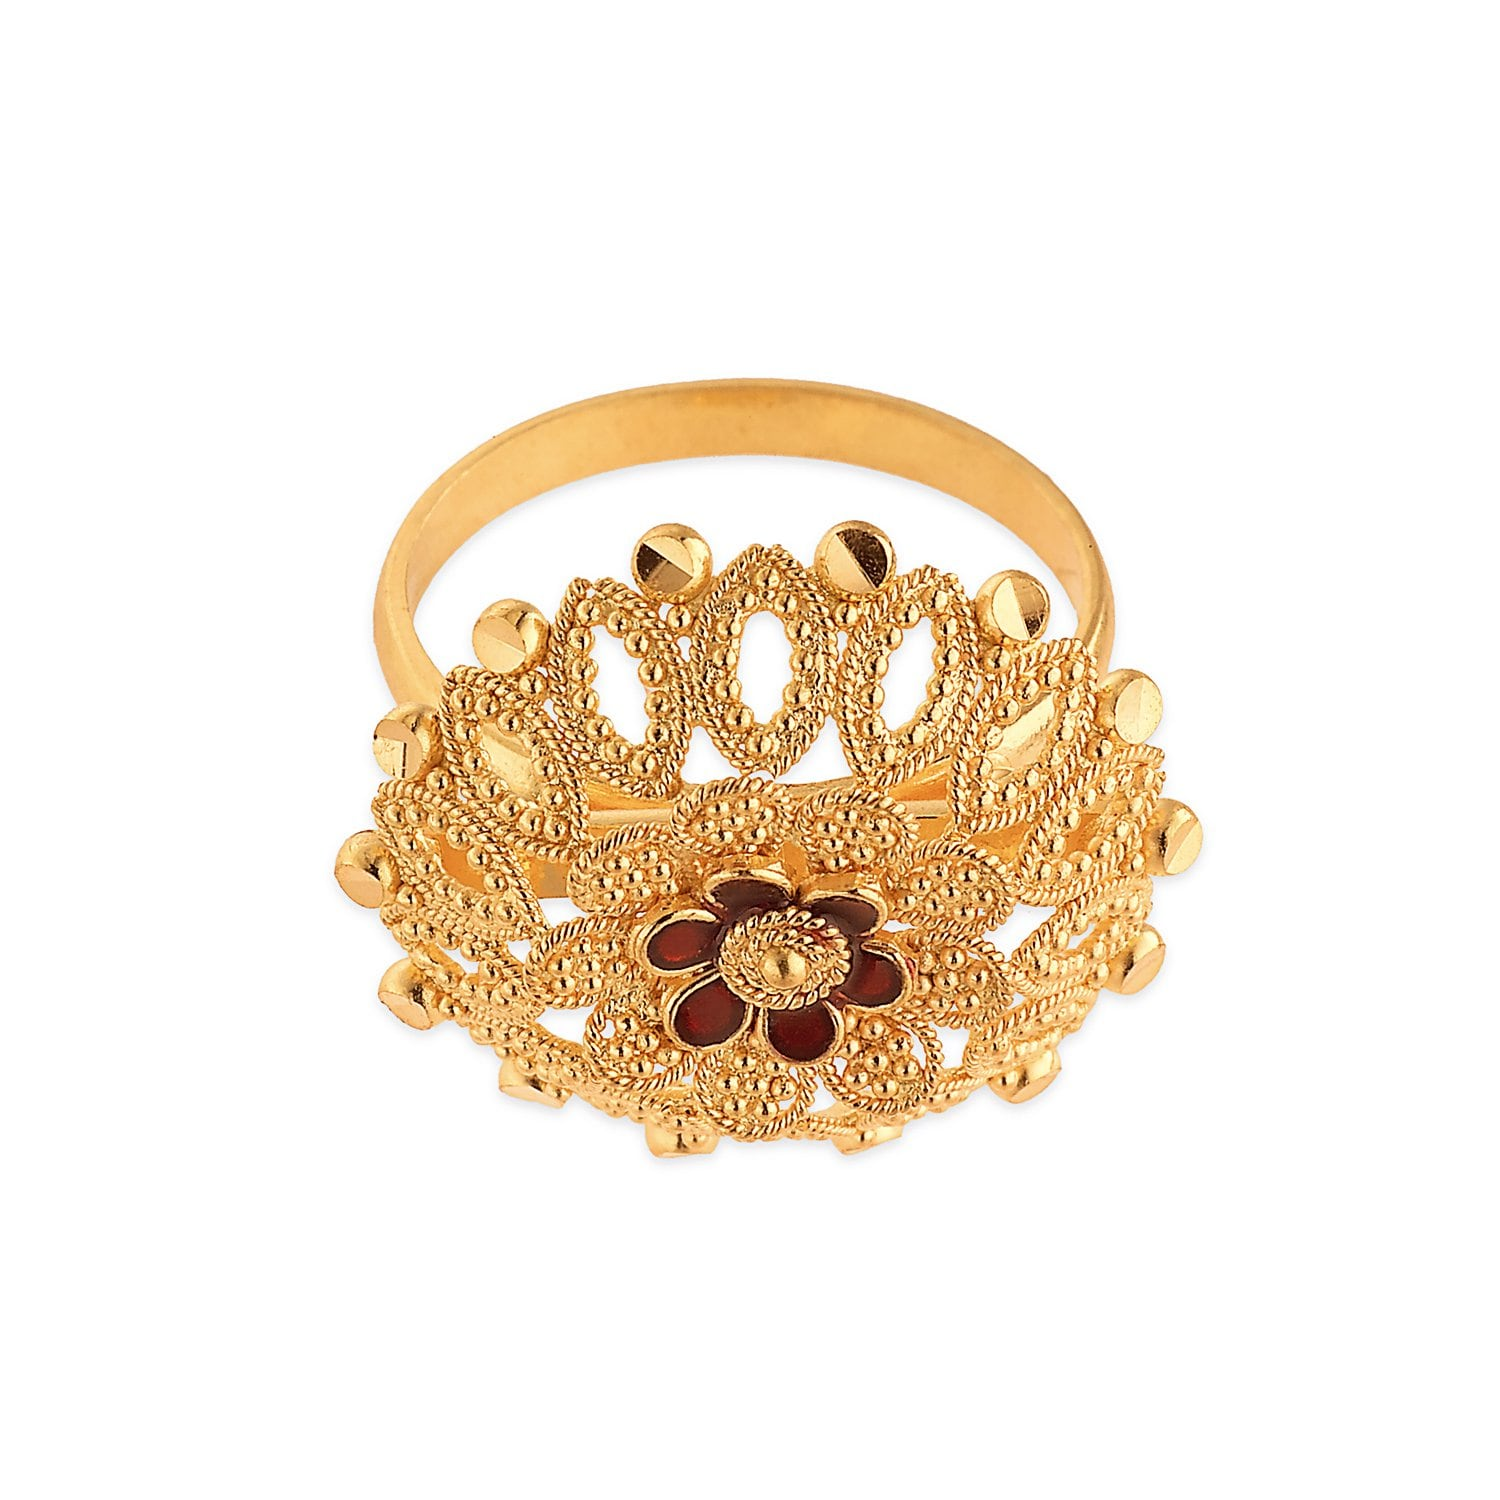 the ring home women beautiful jewellery in for gold design market rings purchase studio most